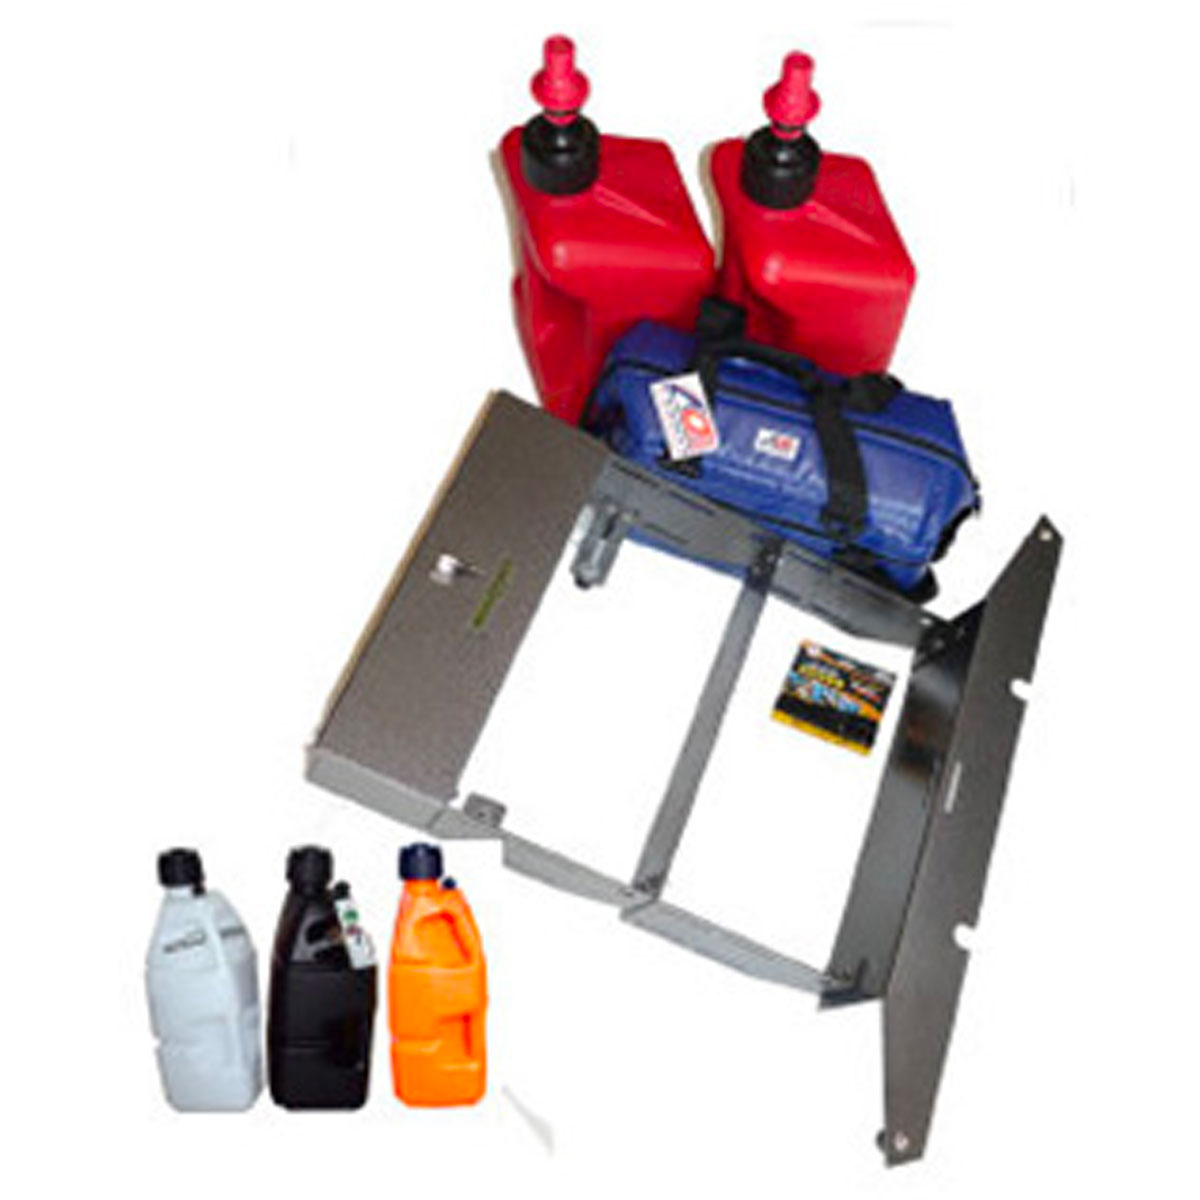 Deluxe RZ Plate, Two RAX B, 2 Jugs, and 24-pack AO Cooler